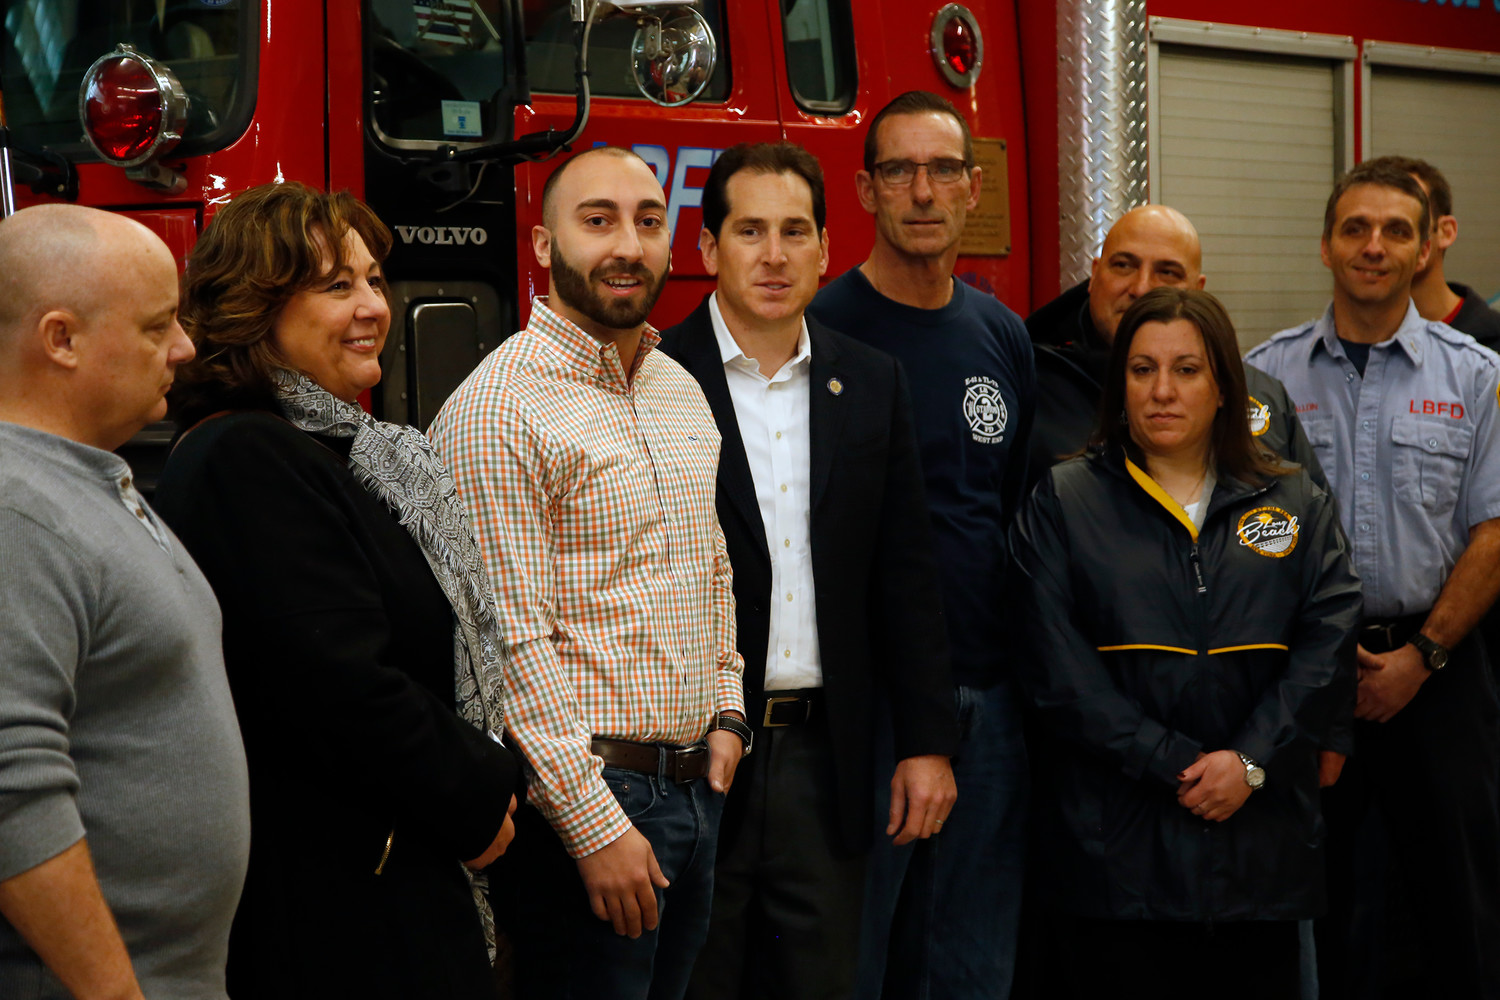 Gaetano Antonacci, of Lindenhurst, third from left, thanked his rescuers for their heroic efforts.